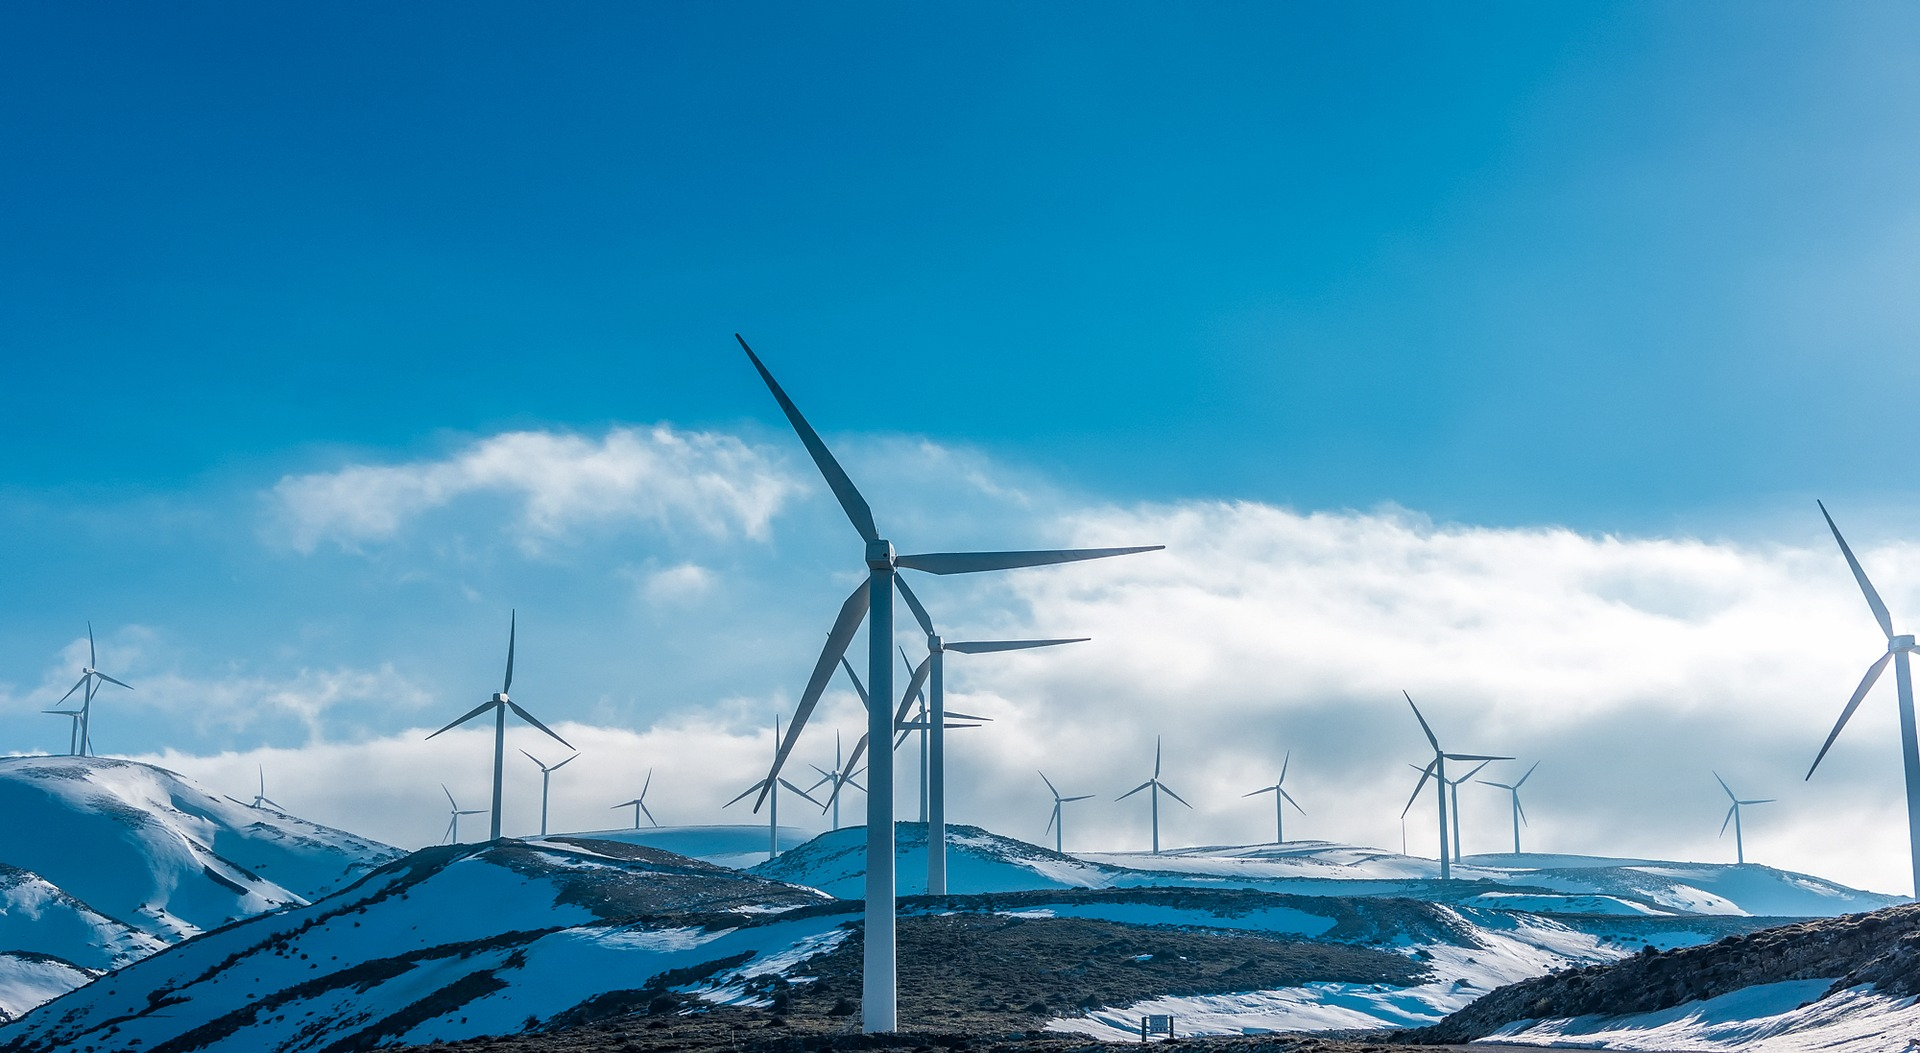 Large-scale wind power would require more land and cause